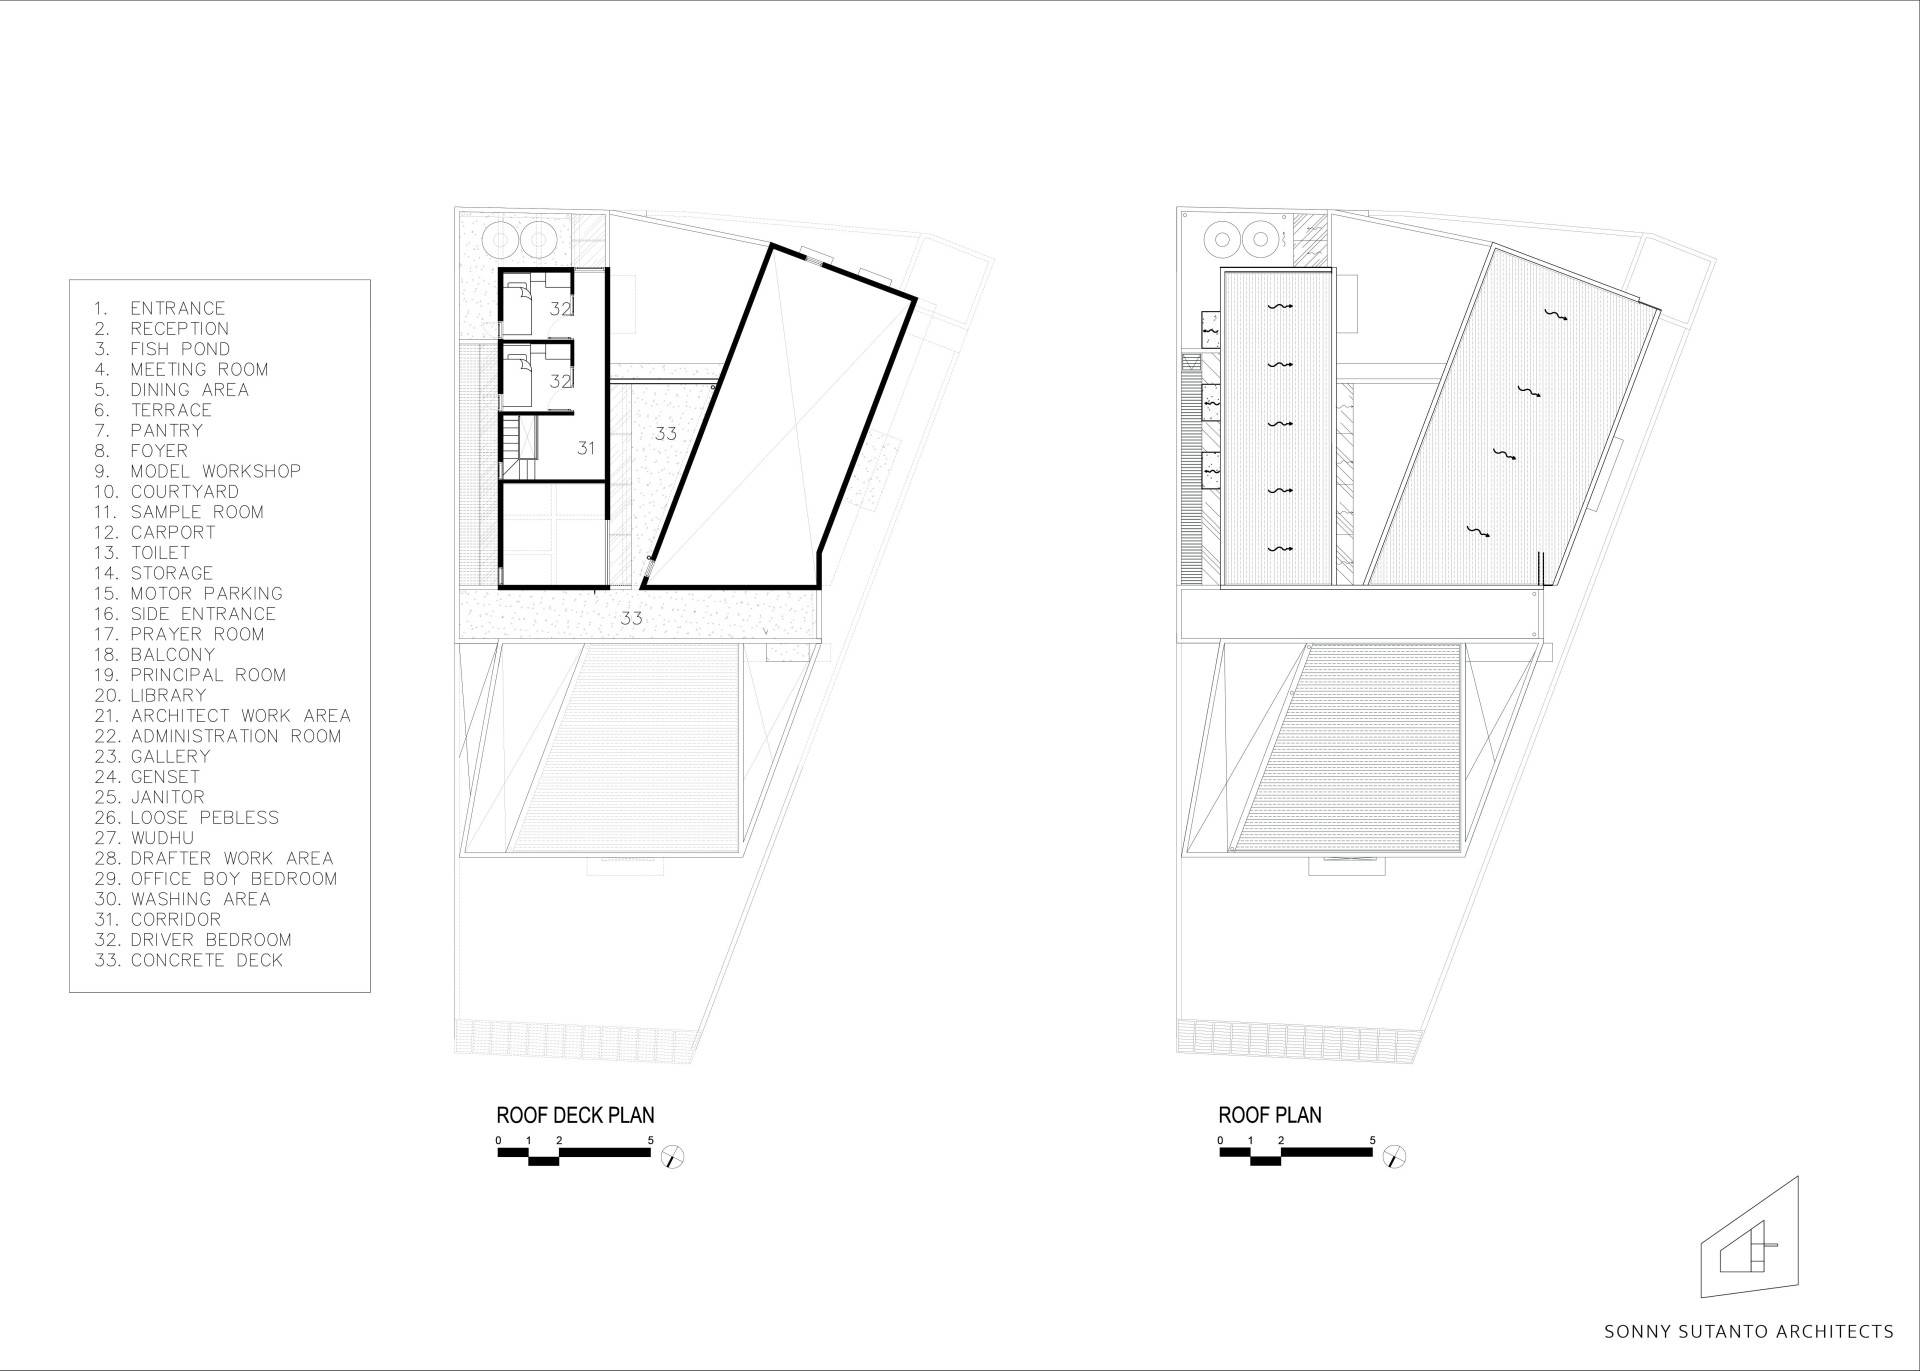 Sonny Sutanto Architects Sonny Sutanto Architects New Office Sunter, North Jakarta, Indonesia Sunter, North Jakarta, Indonesia Floorplan   2091